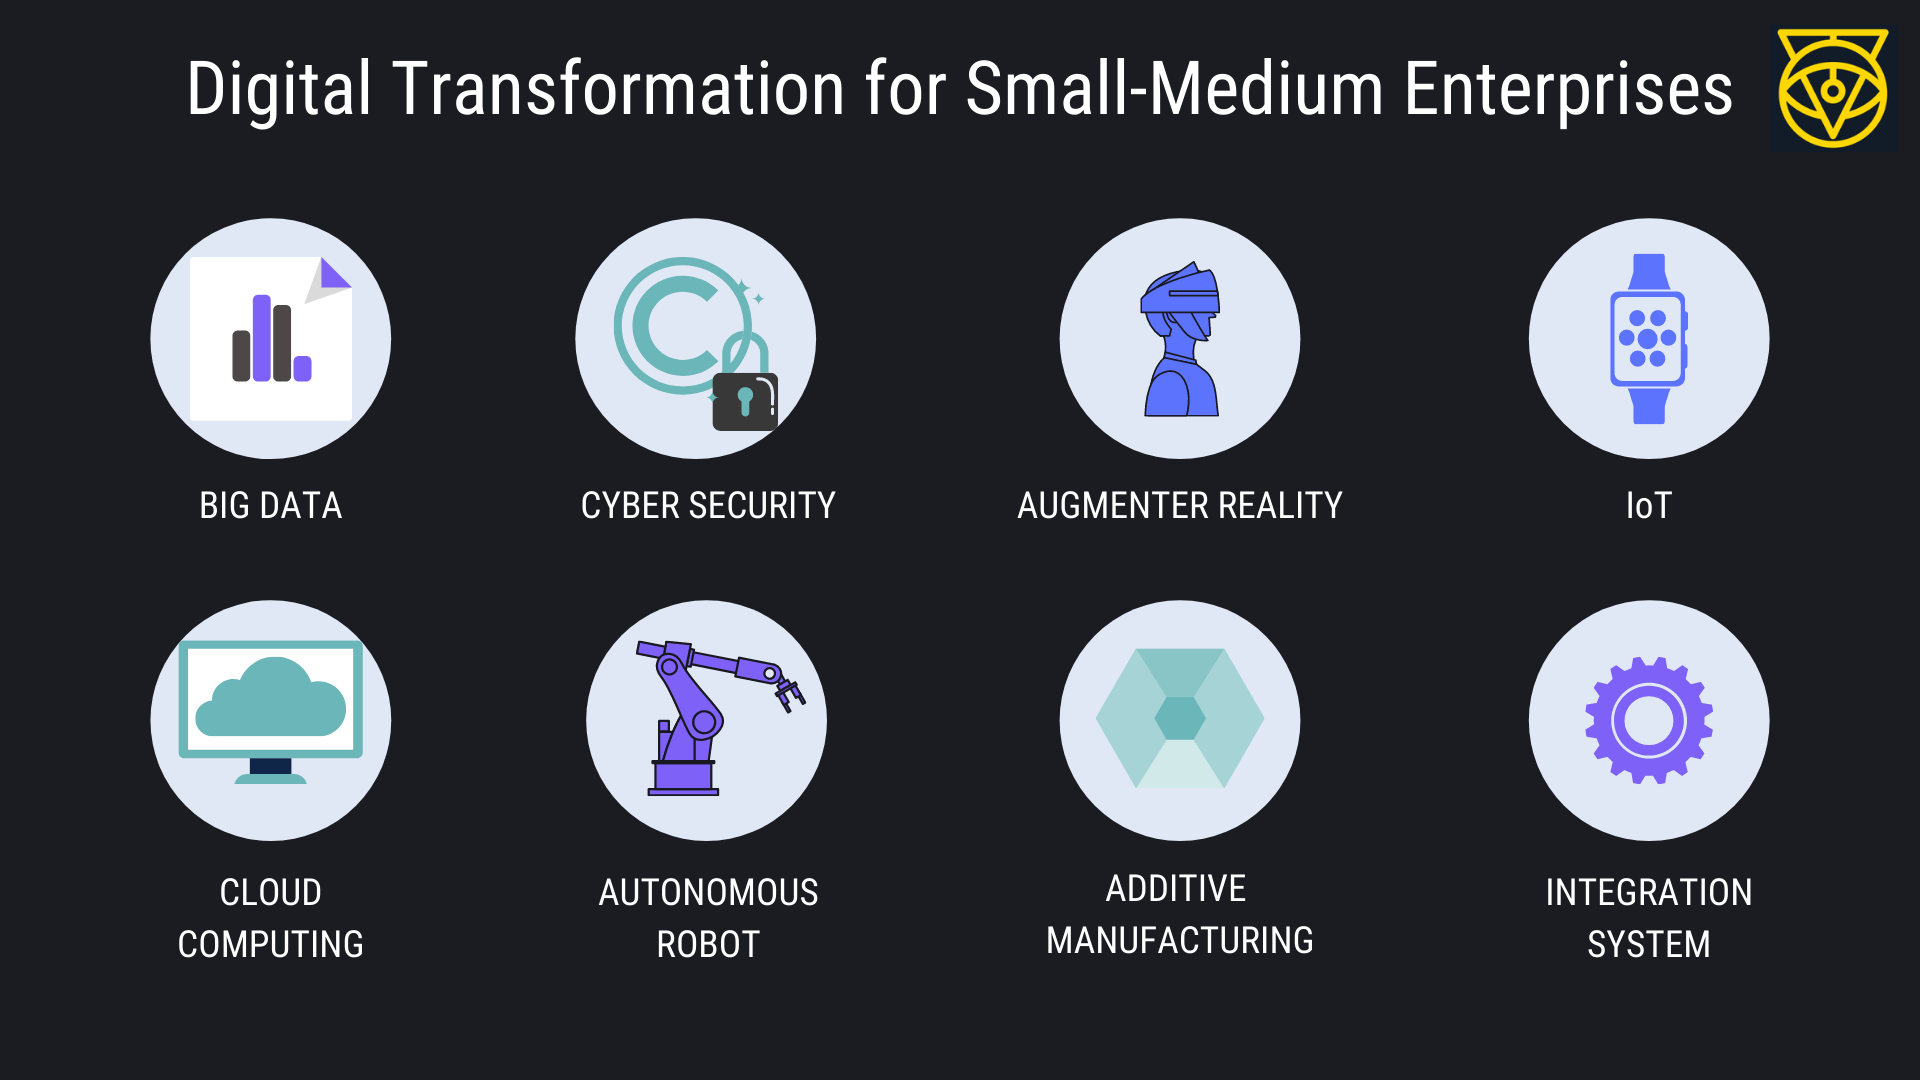 Top digital technologies for Small Medium Enterprises to succeed in Industry 40